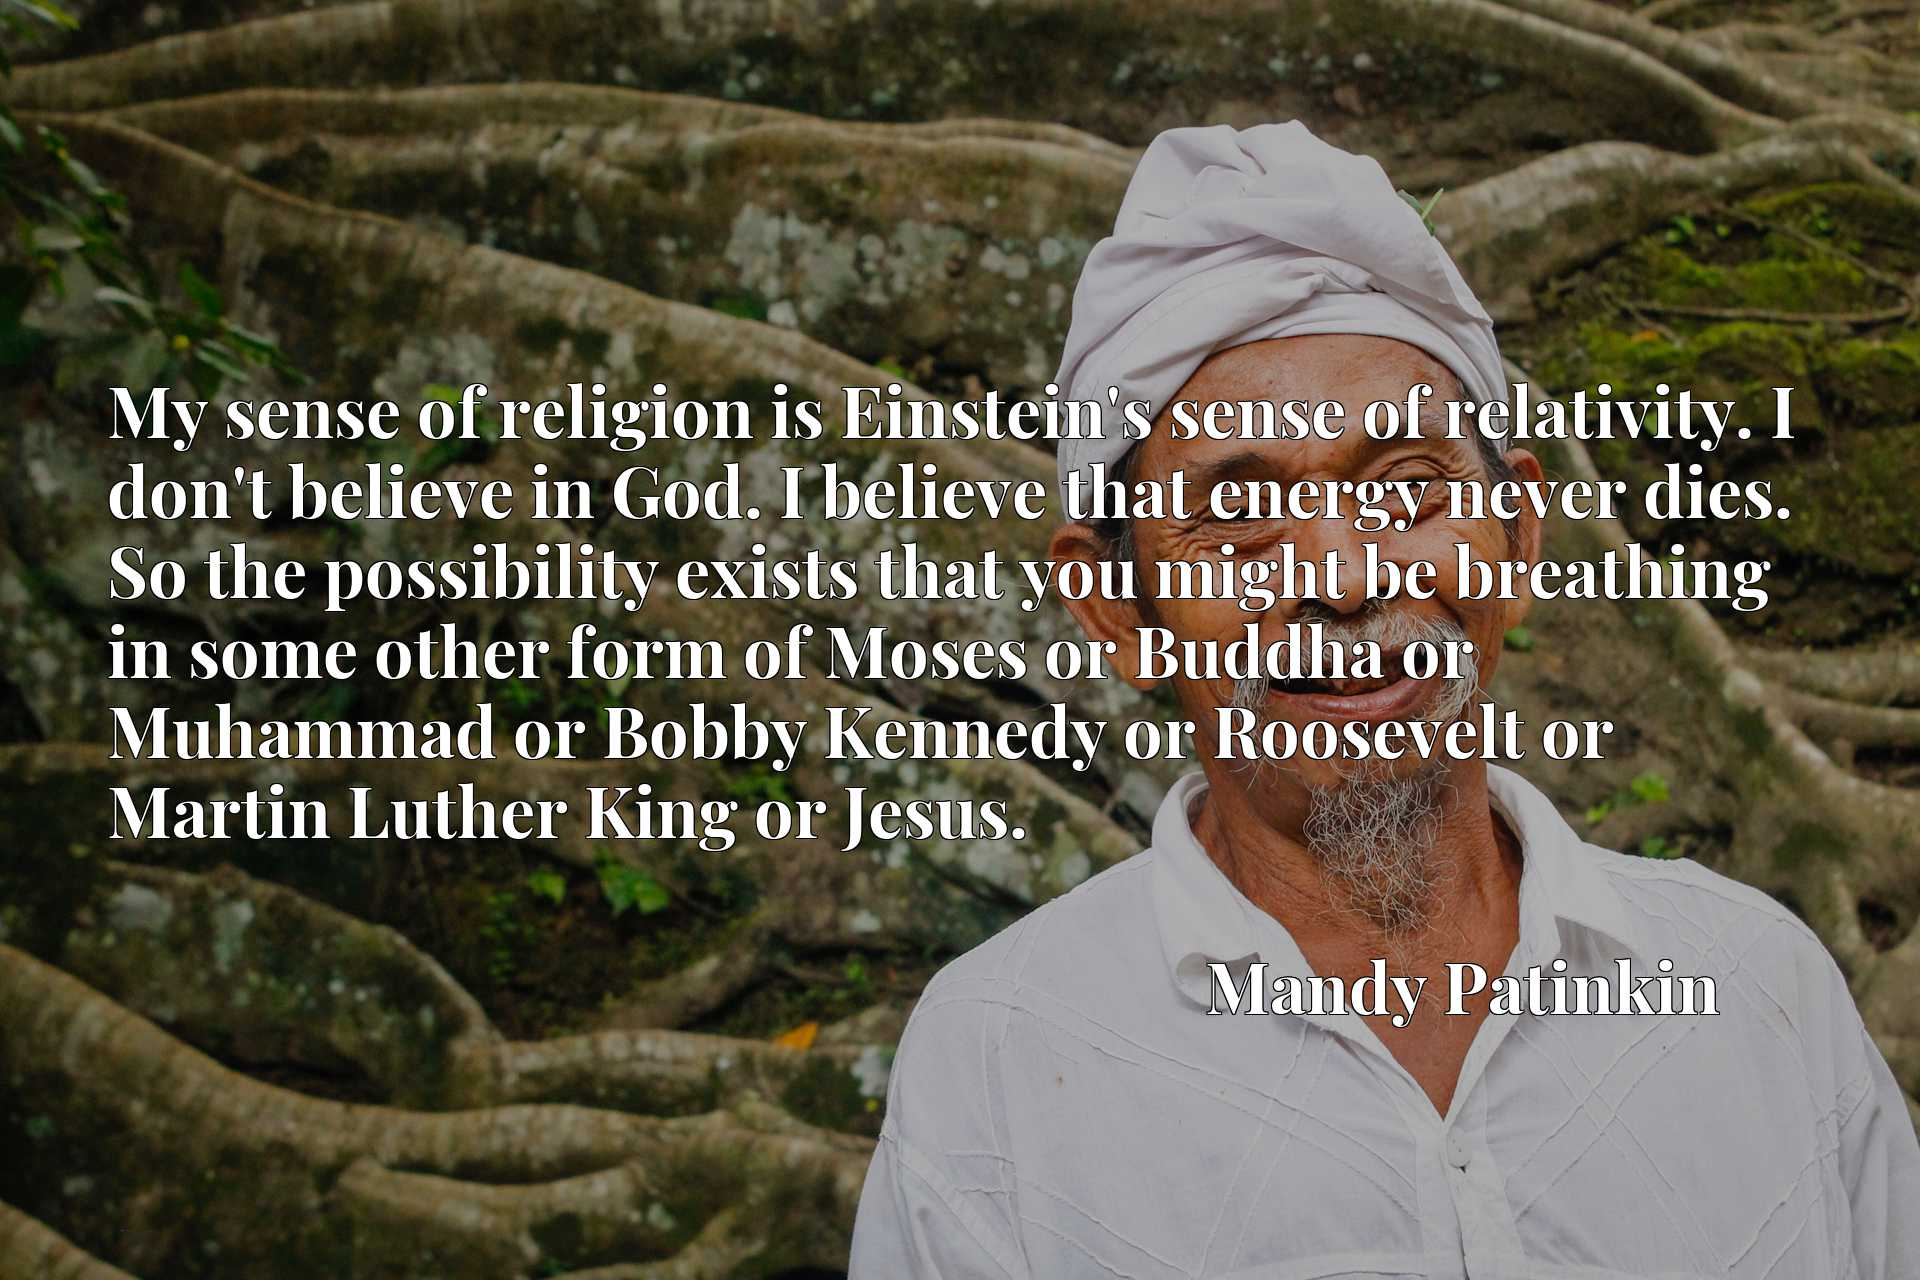 My sense of religion is Einstein's sense of relativity. I don't believe in God. I believe that energy never dies. So the possibility exists that you might be breathing in some other form of Moses or Buddha or Muhammad or Bobby Kennedy or Roosevelt or Martin Luther King or Jesus.